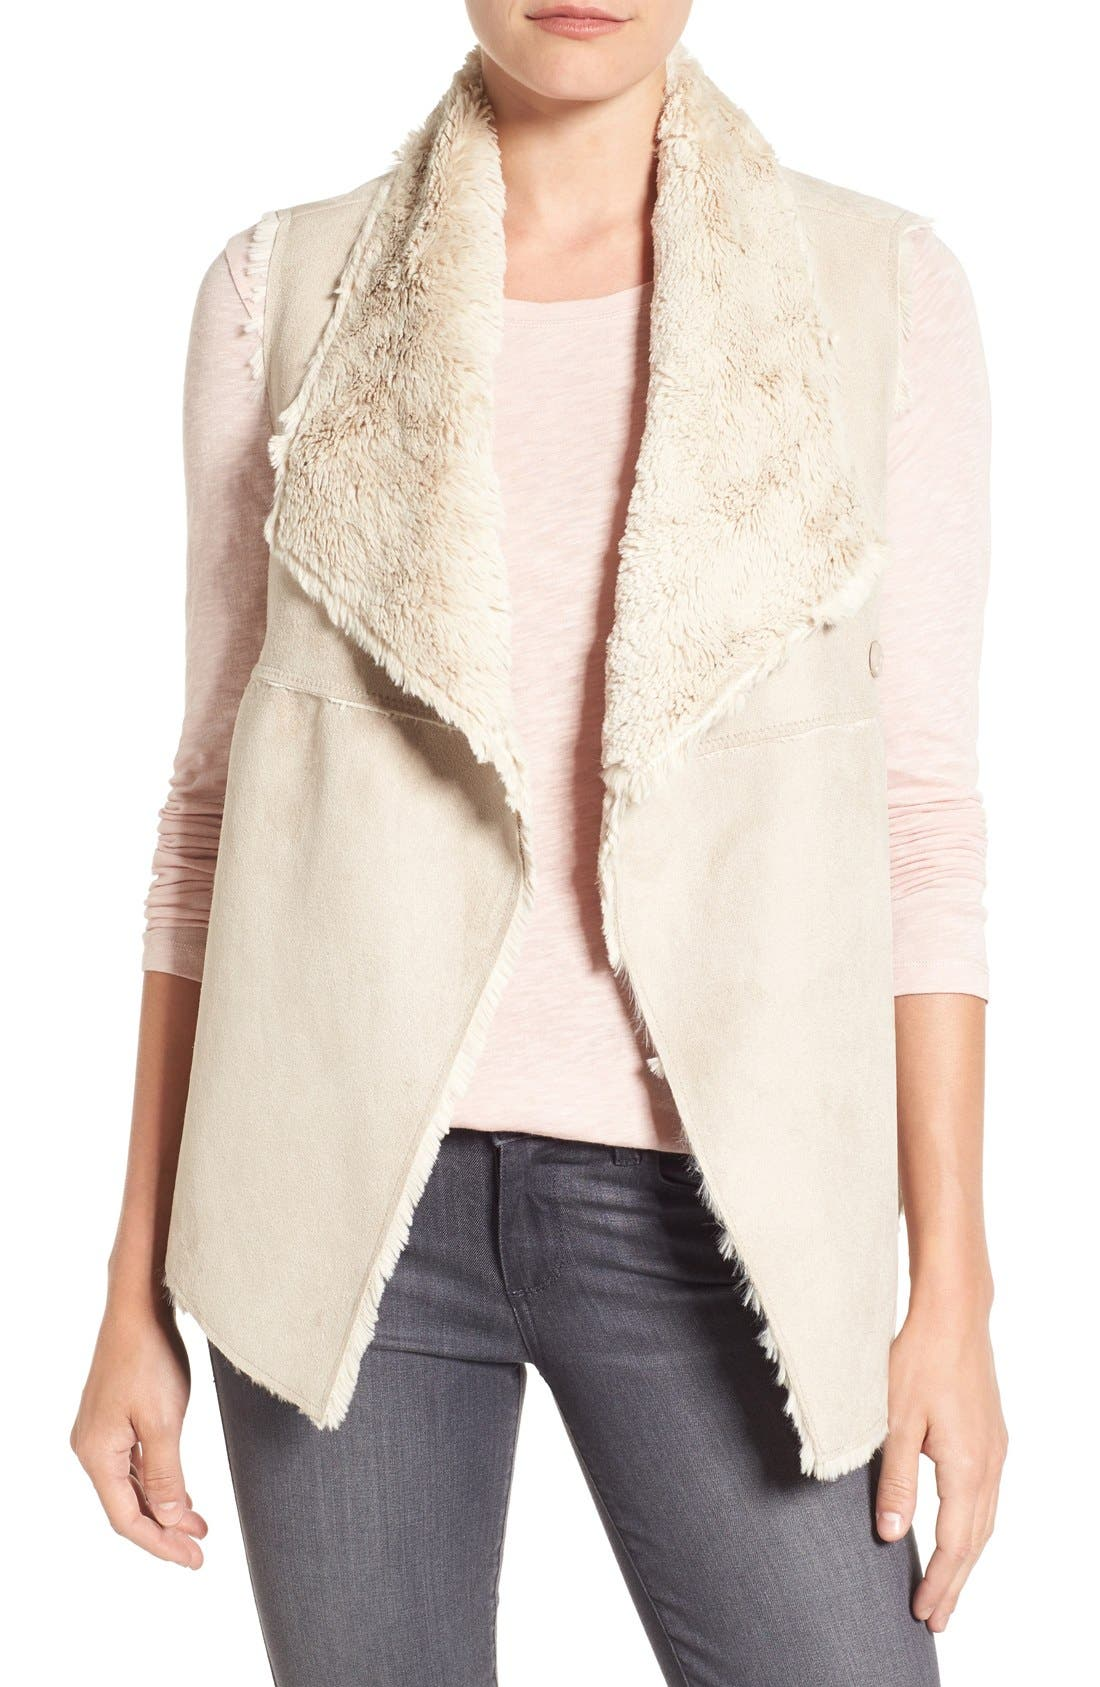 DYLAN,                             'Madison' Faux Shearling Vest,                             Main thumbnail 1, color,                             256